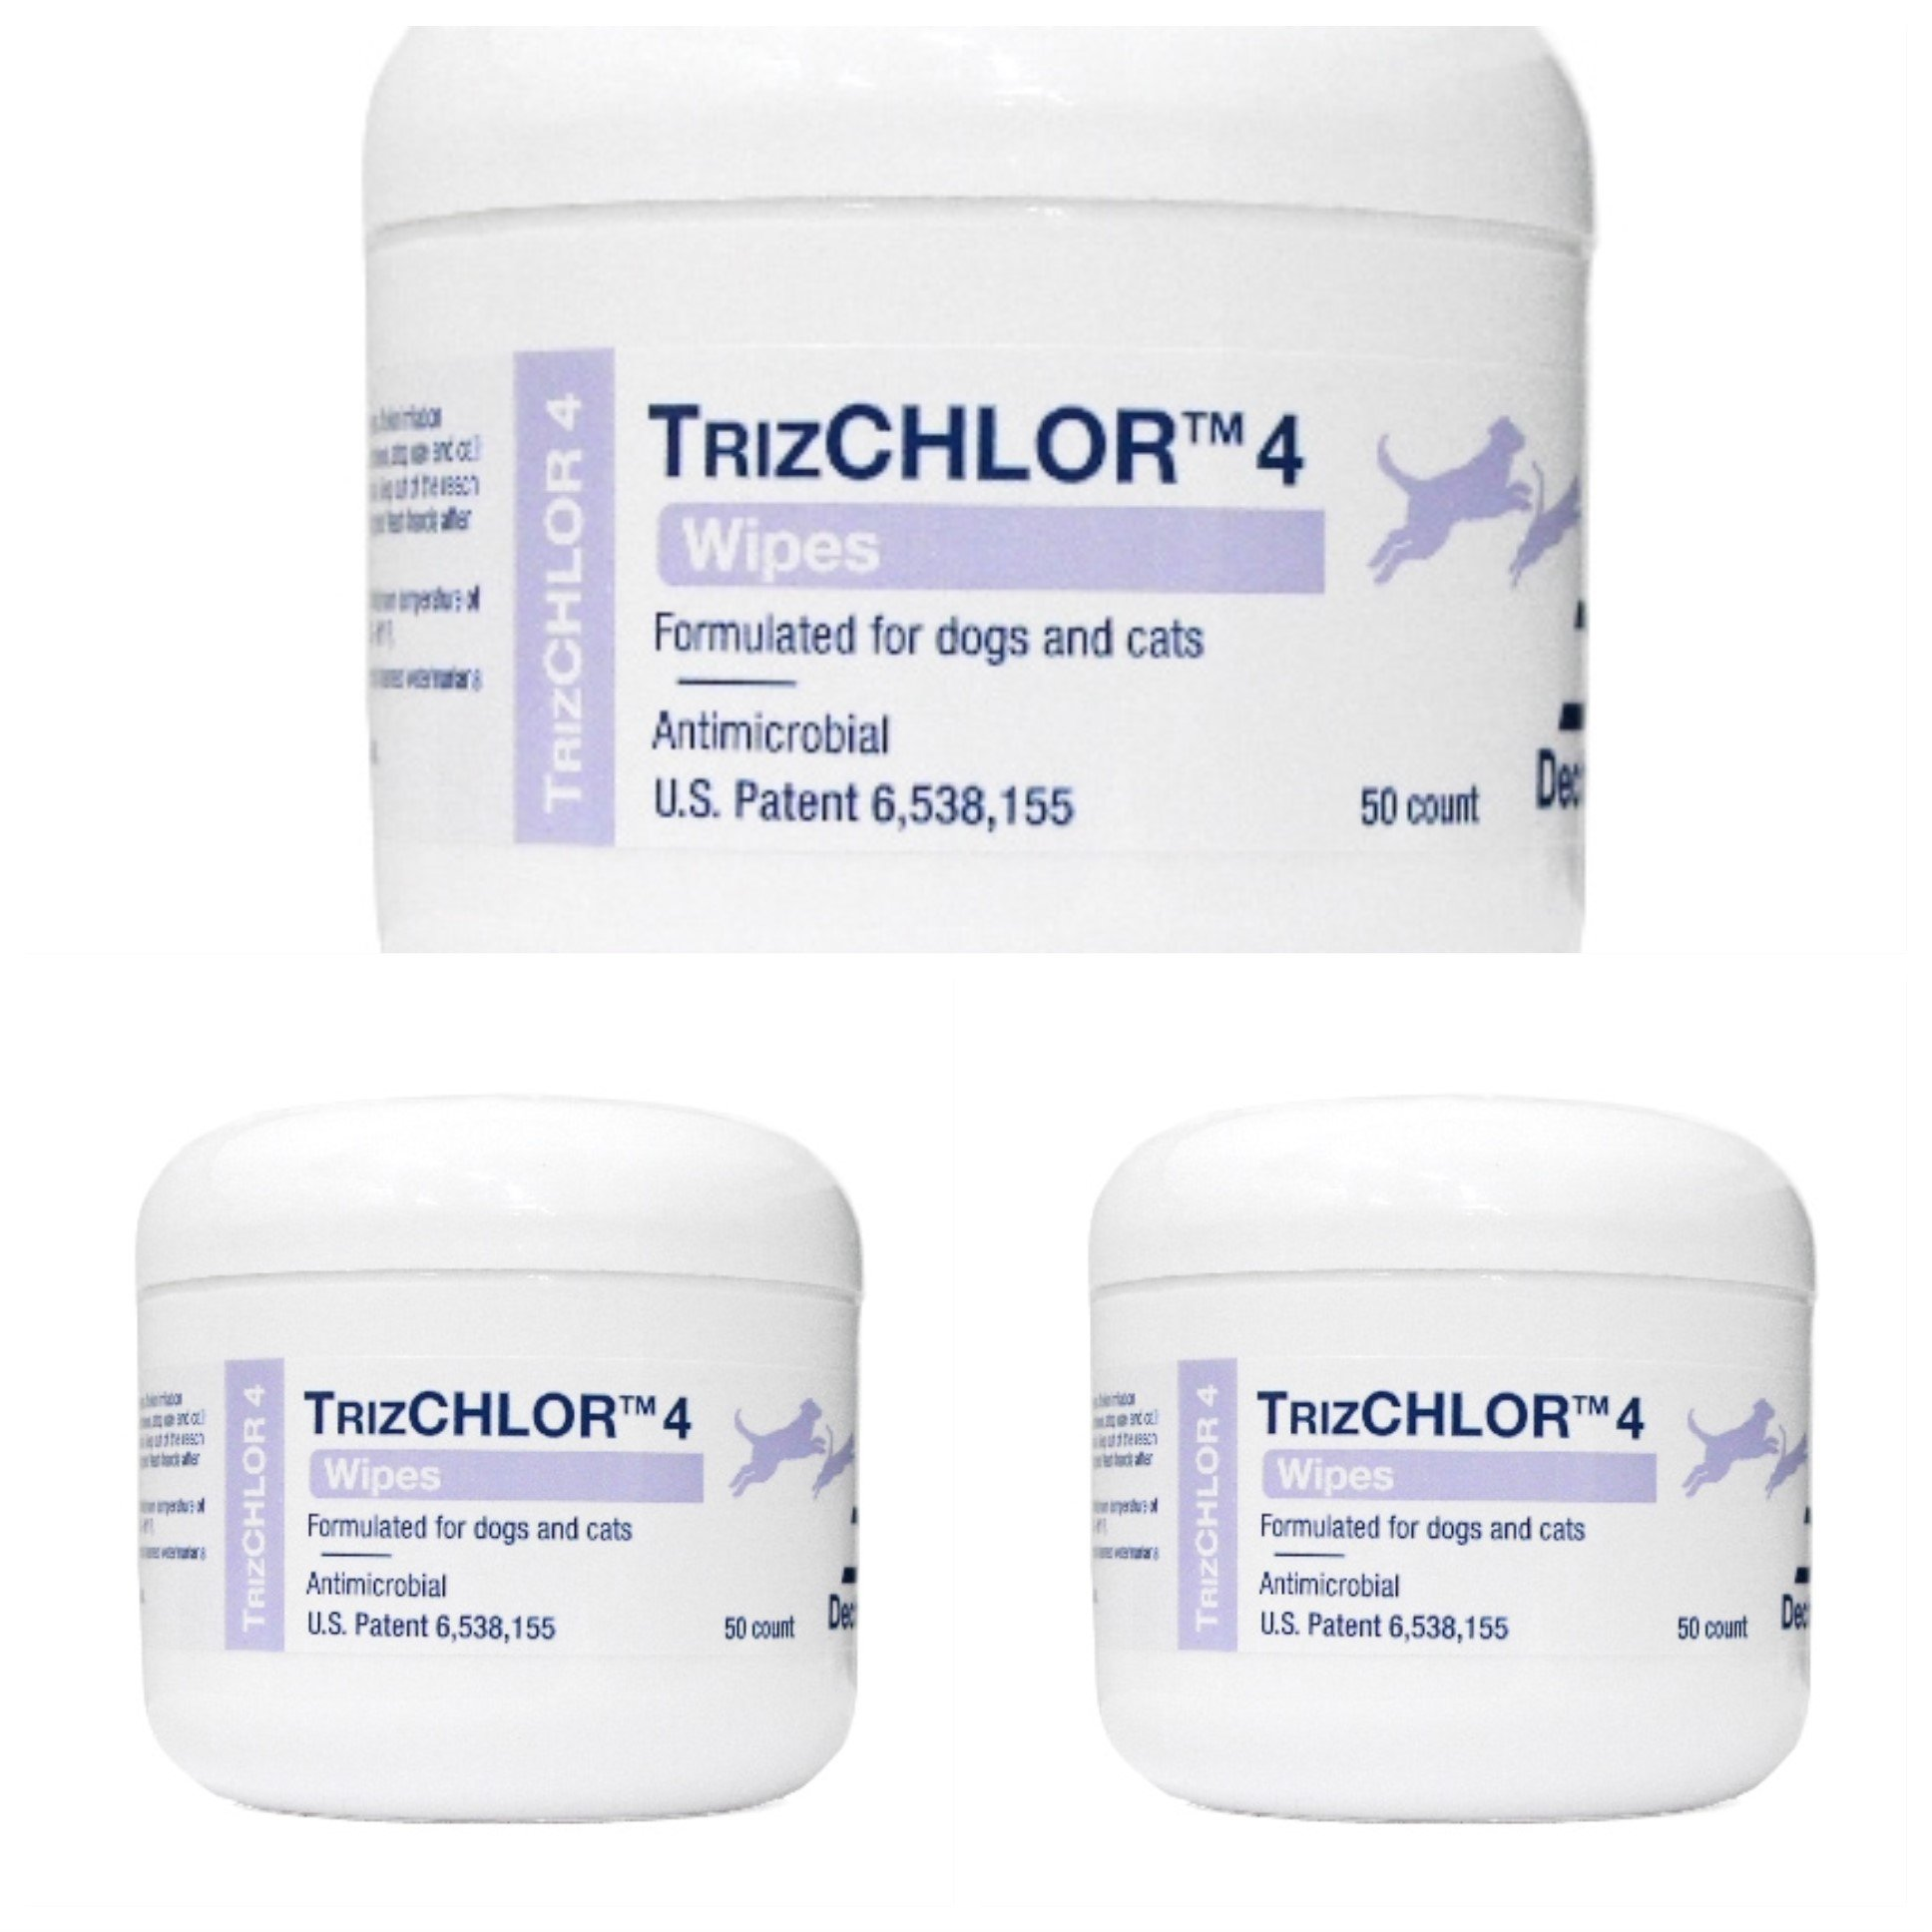 TRIZCHLOR 4 Dechra Pet Wipes, 50 Each, 3 Pack